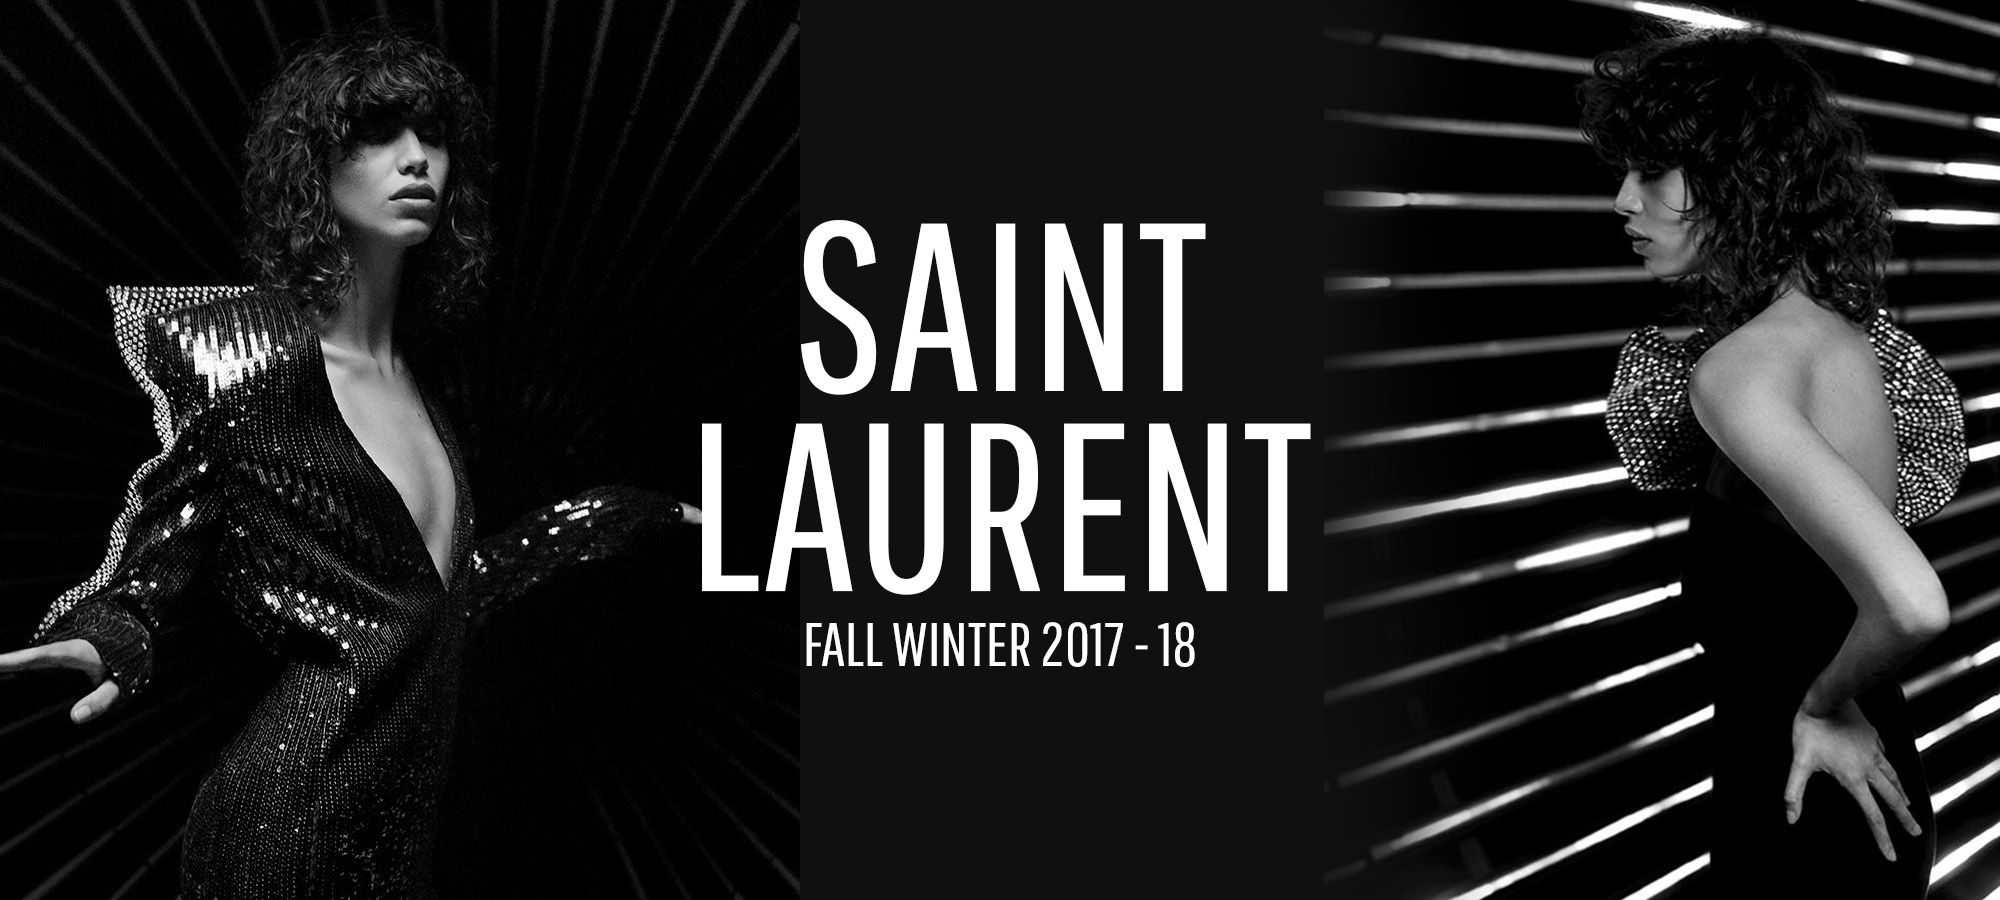 Saint Laurent Women - Fall Winter 2017